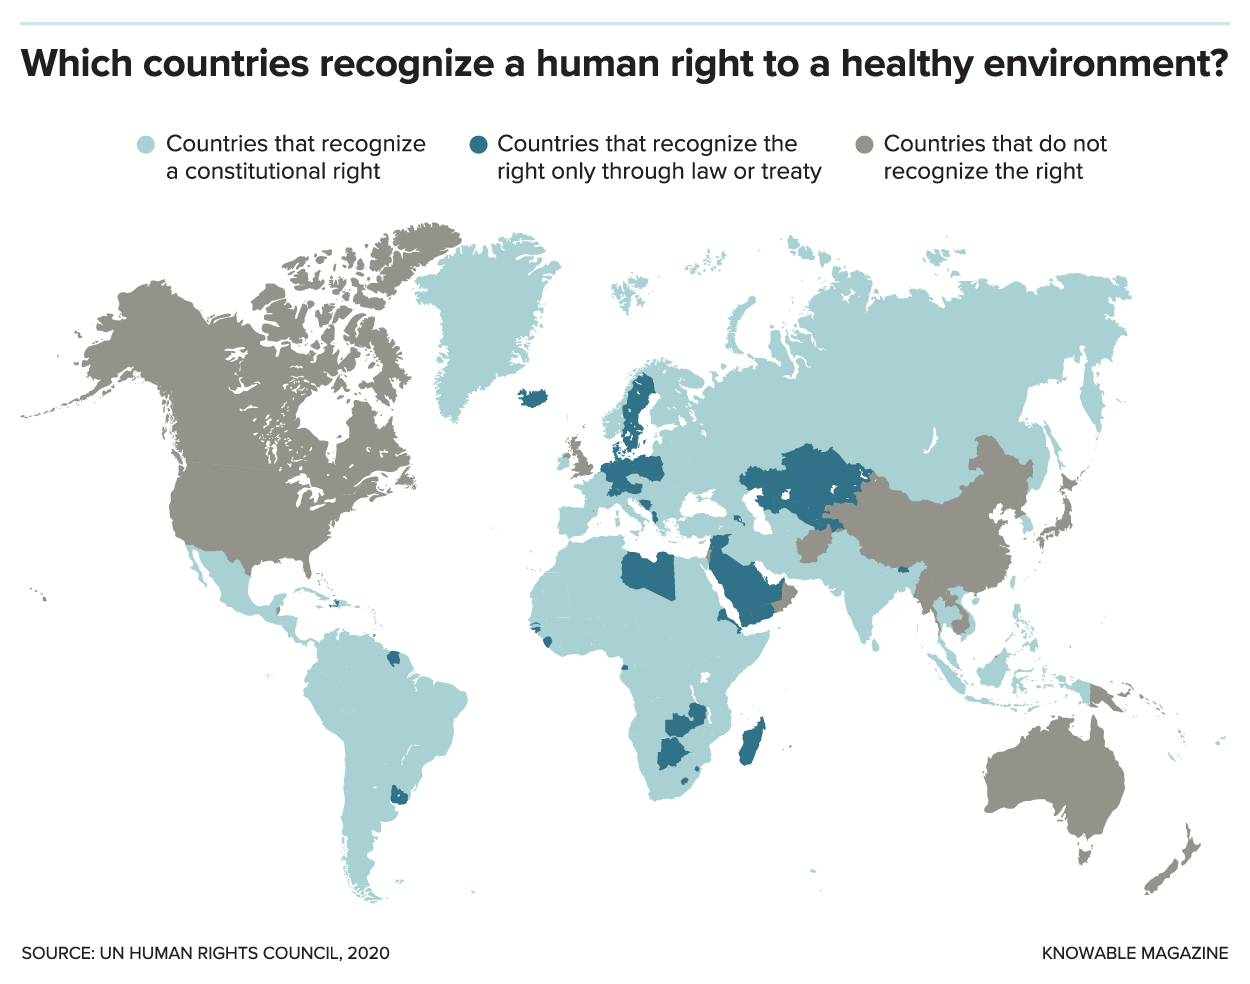 Map showing which nations recognize a human right to a healthy environment.